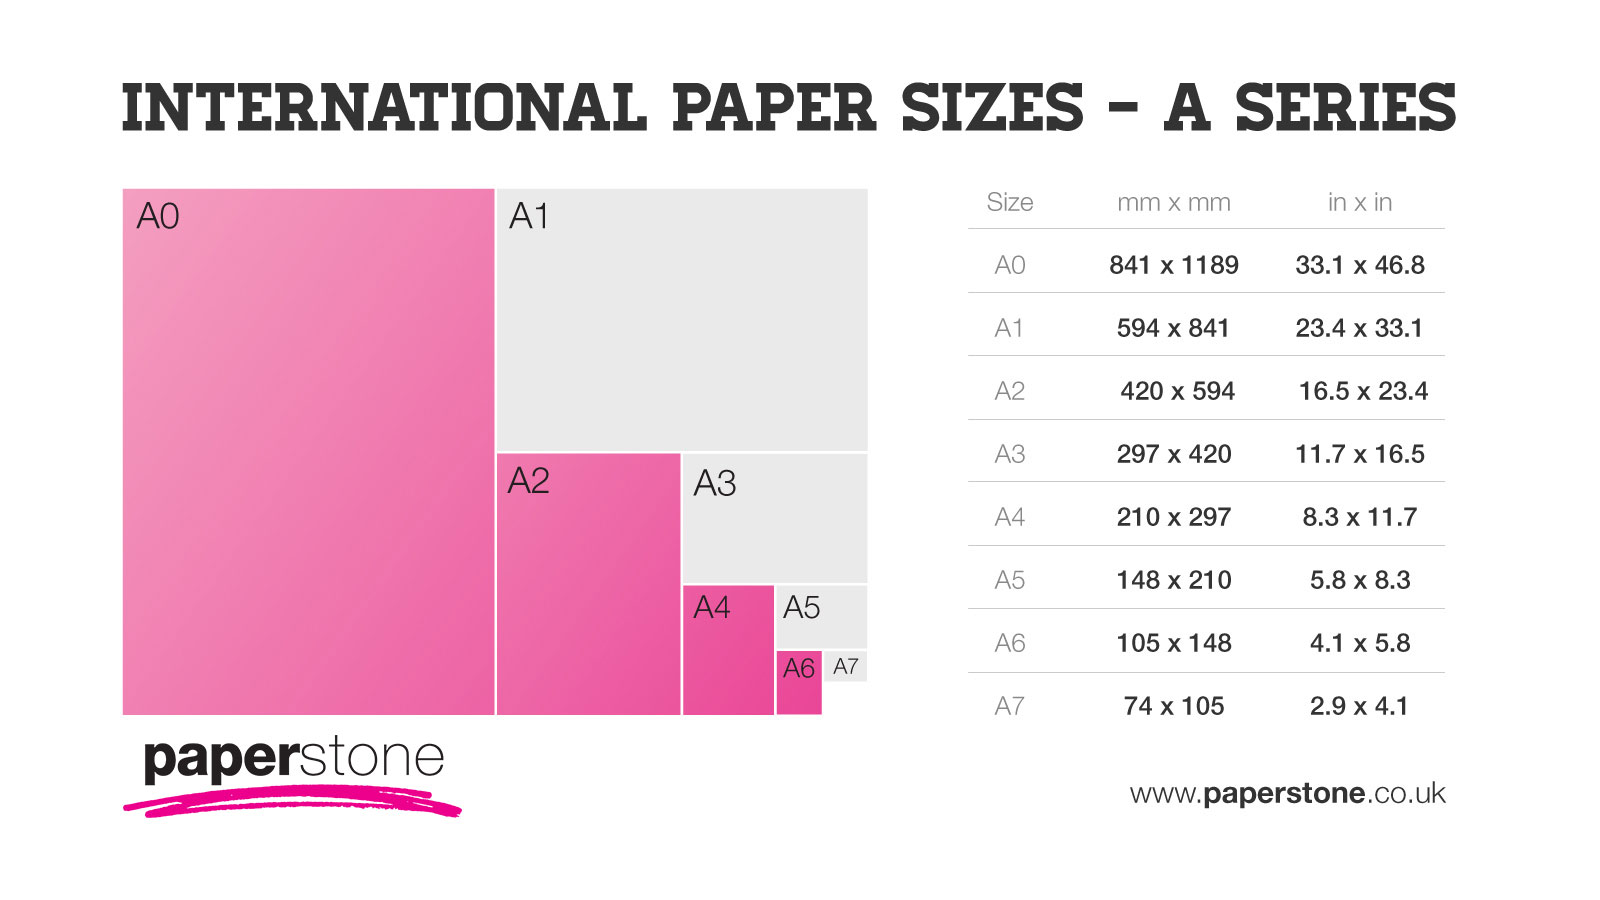 where to buy a4 paper in us